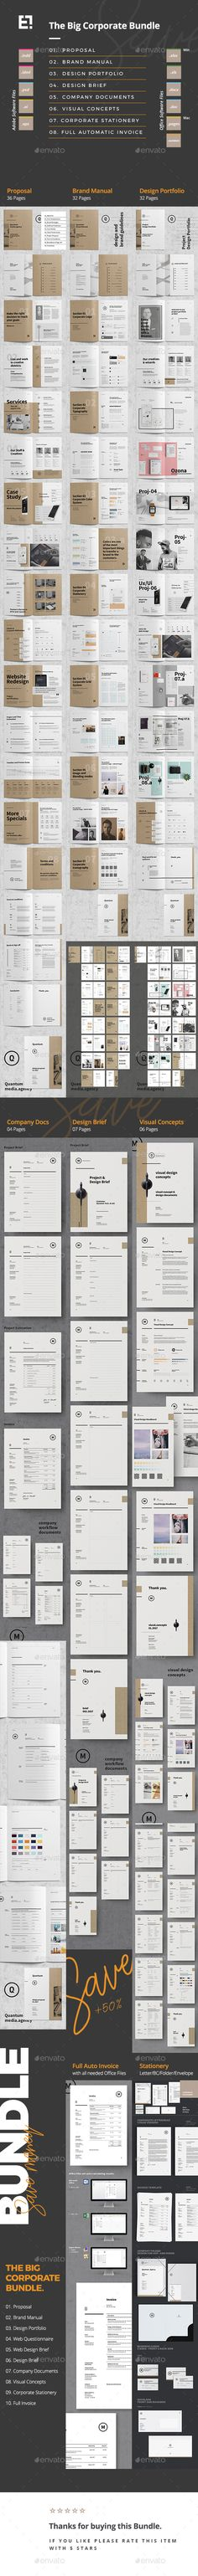 Business Plan u2014 InDesign INDD elegant design